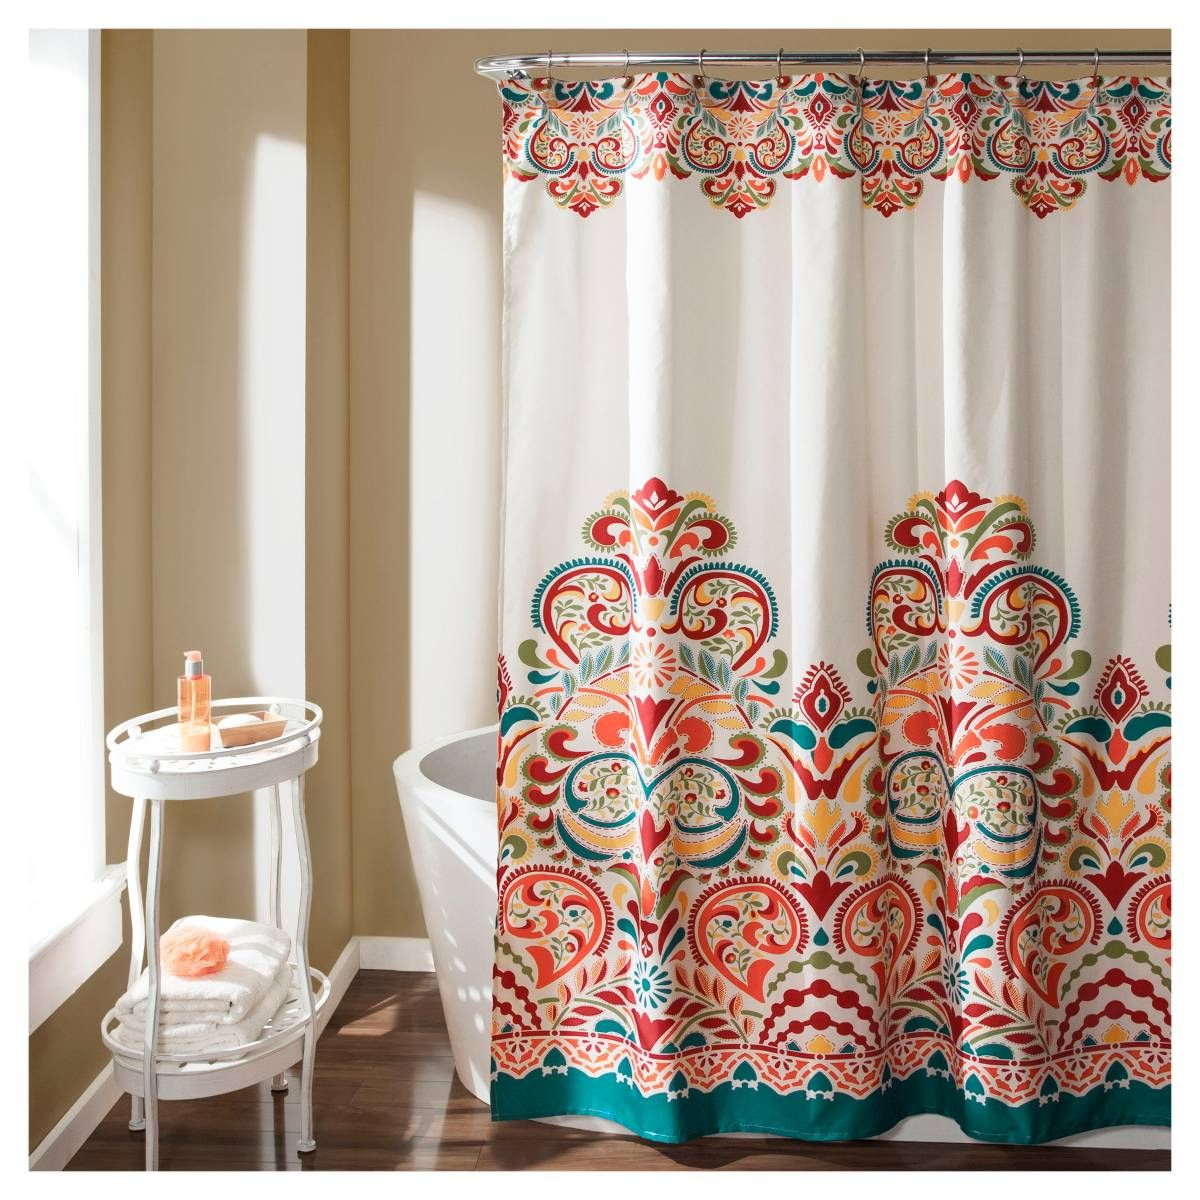 Clara Shower Curtain Turquoise Lush Decor Patterned Shower